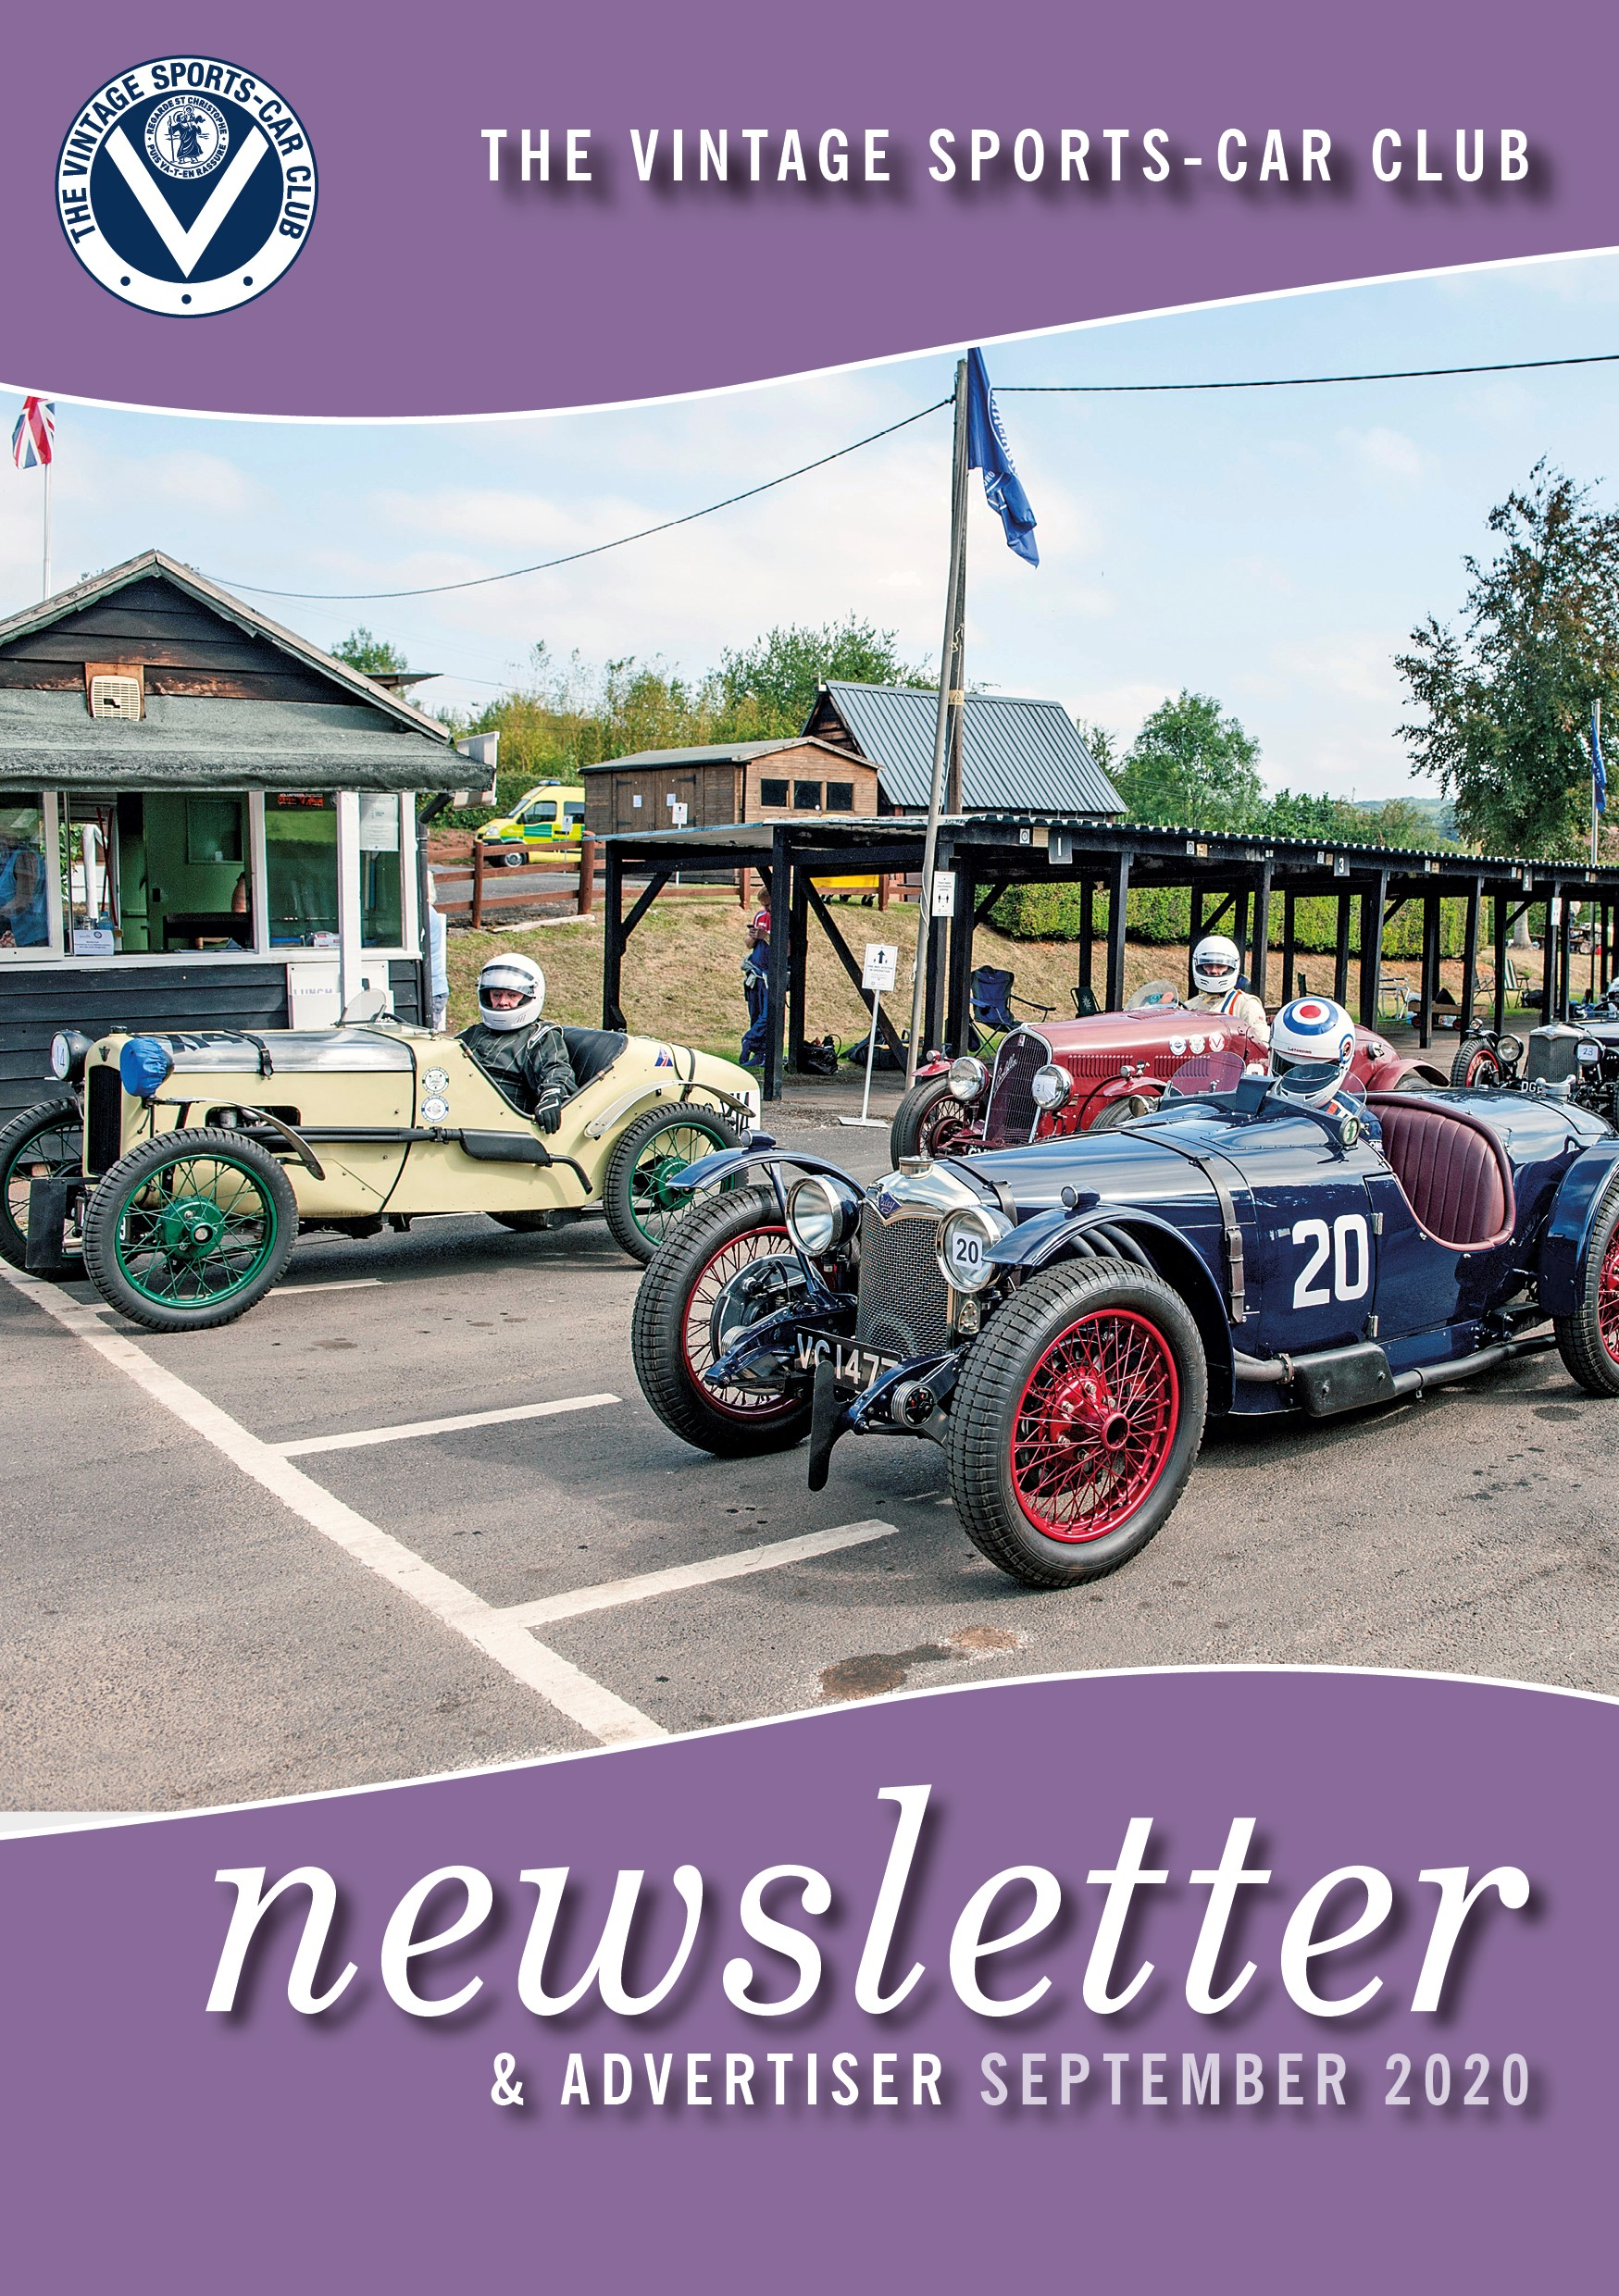 September Newsletter Now Available